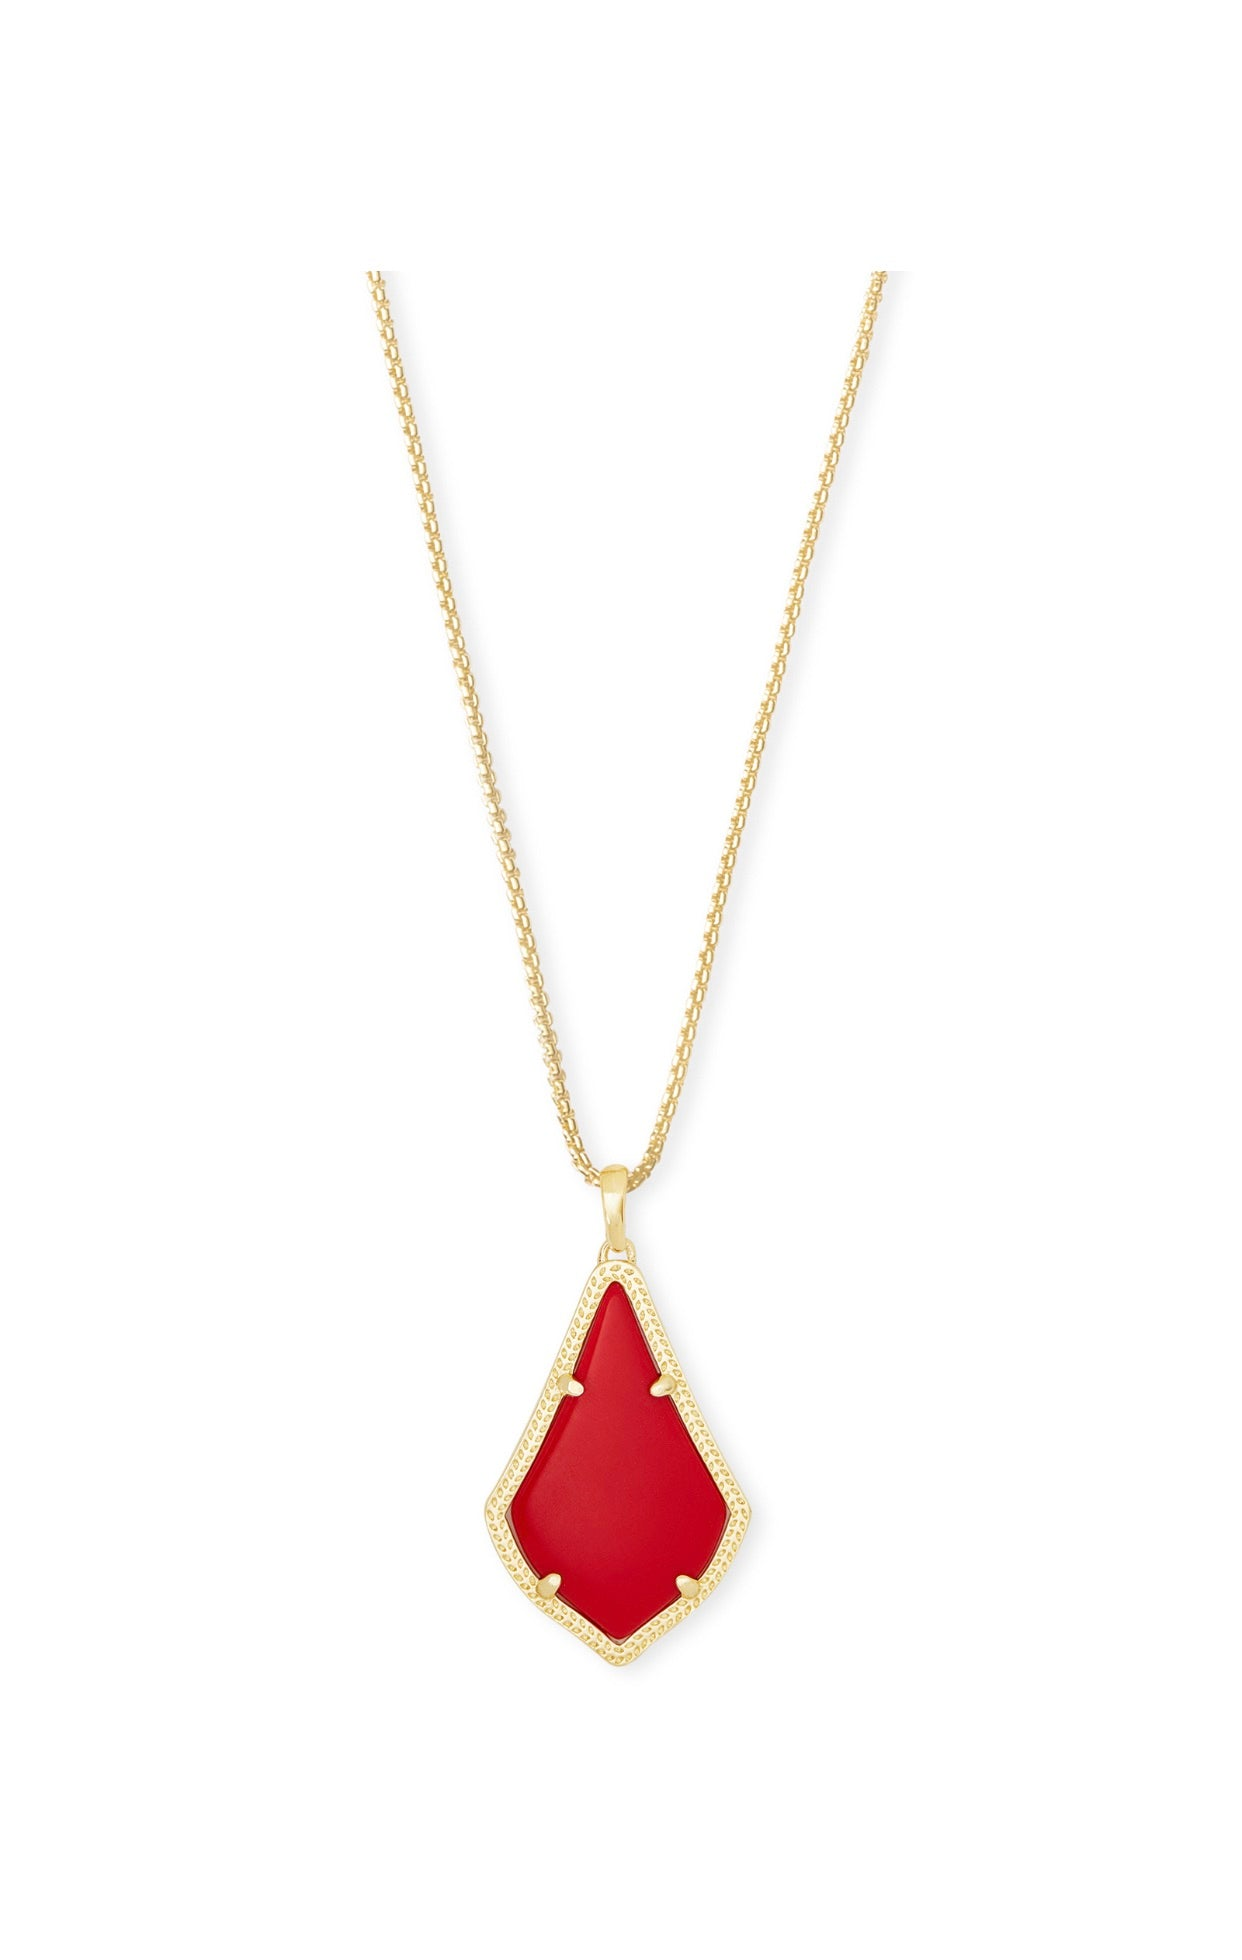 ALEX PENDANT NECKLACE GOLD Bright RED